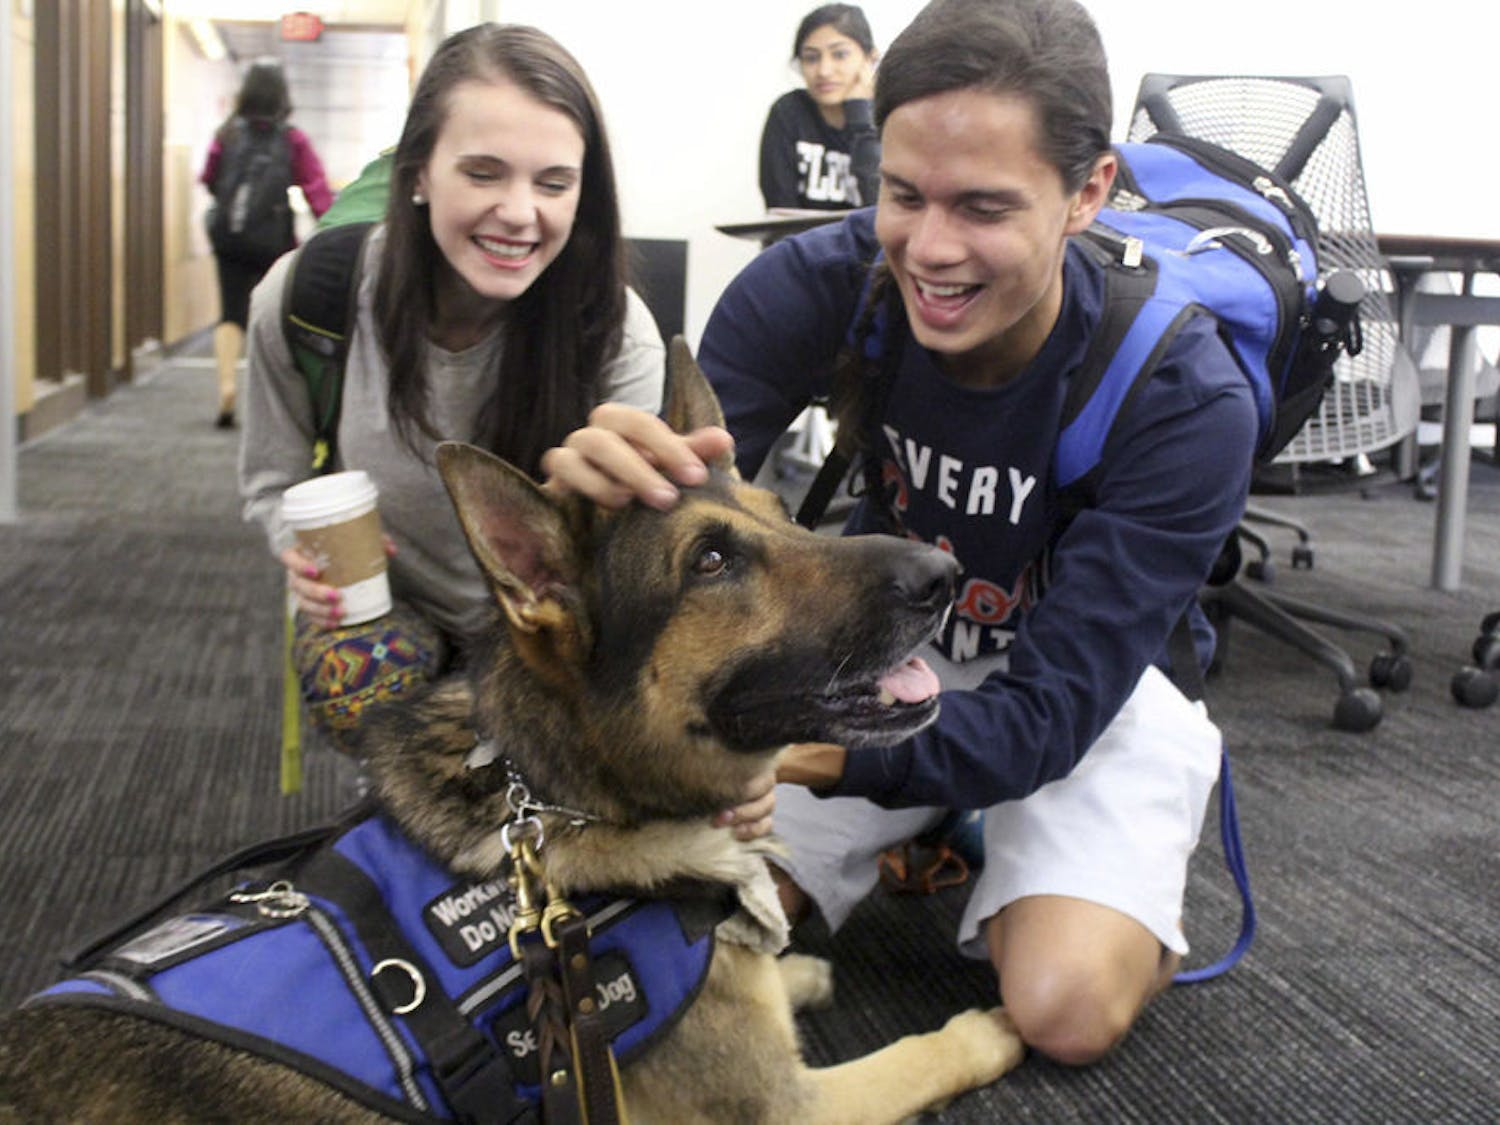 Paige Butz and Jason Feliciano, both 20-year-old public relations juniors, play with Zeus the service dog on the second floor of Library West on Wednesday. Zeus visited studying students for Finals Relaxation Week.